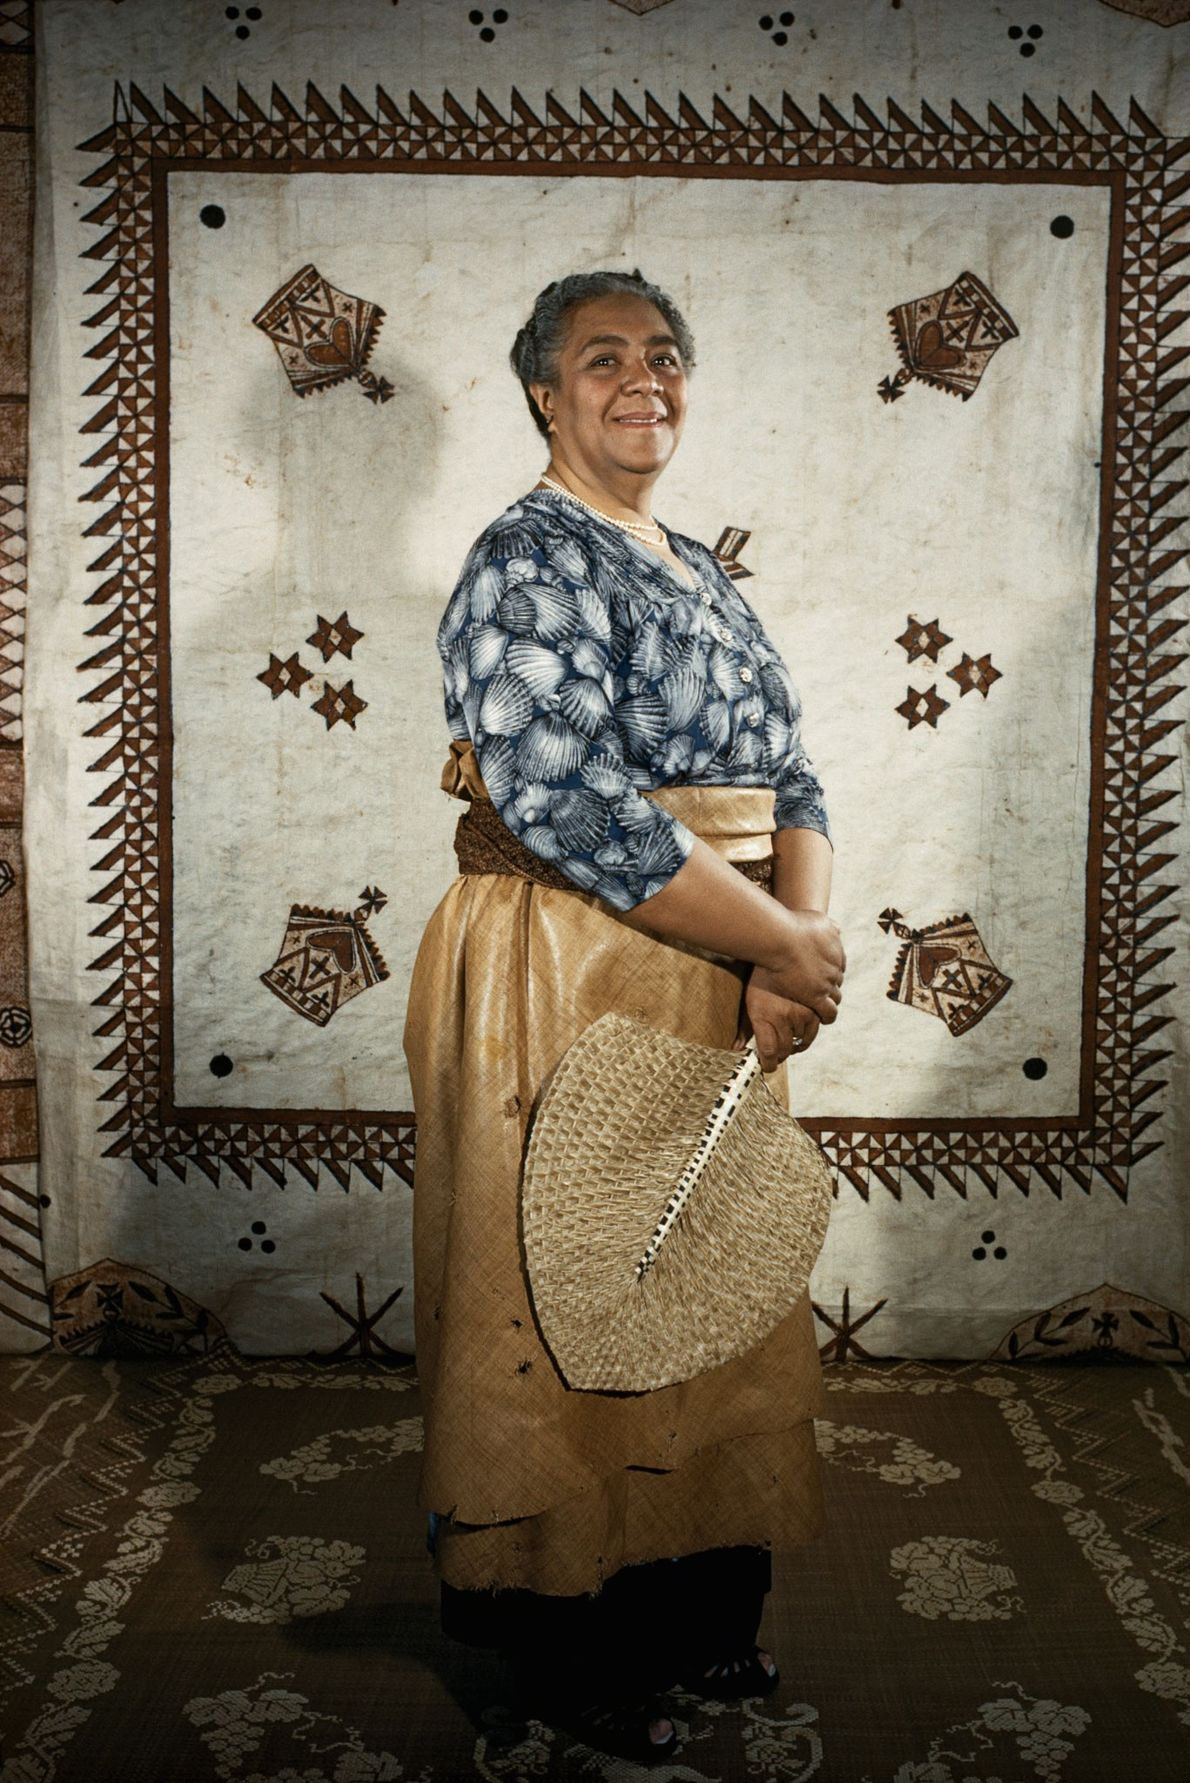 Tonga's queen Salote Tupou III ruled the island of Tonga for almost 48 years until her ...